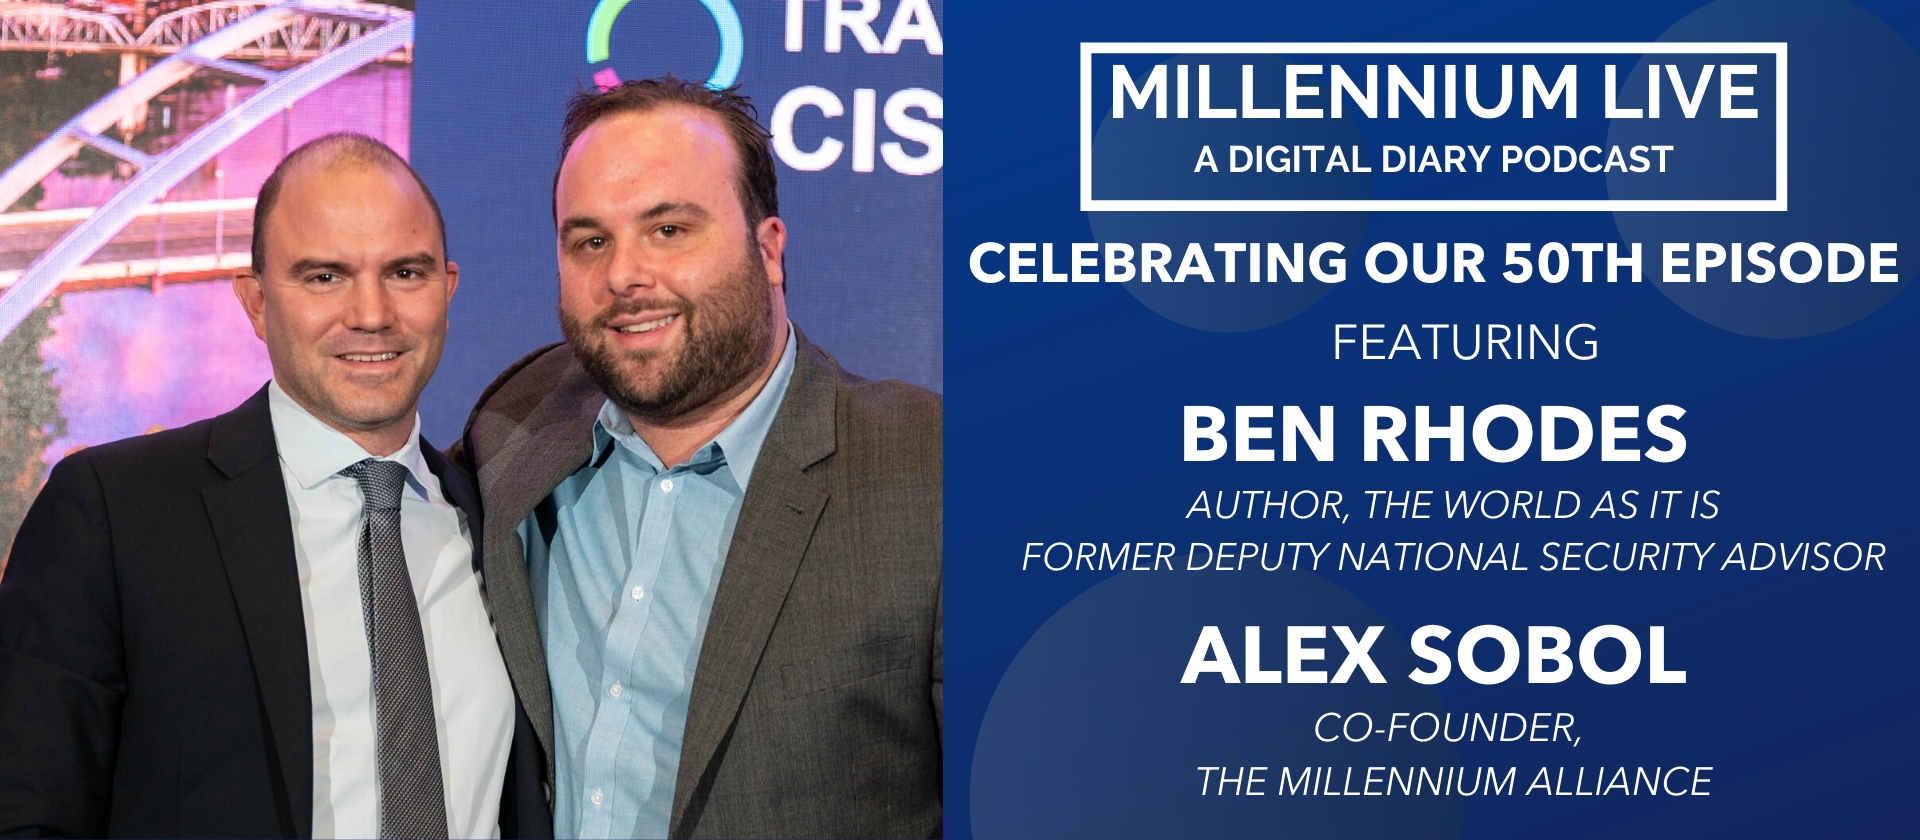 Ben Rhodes Millennium Alliance Podcast